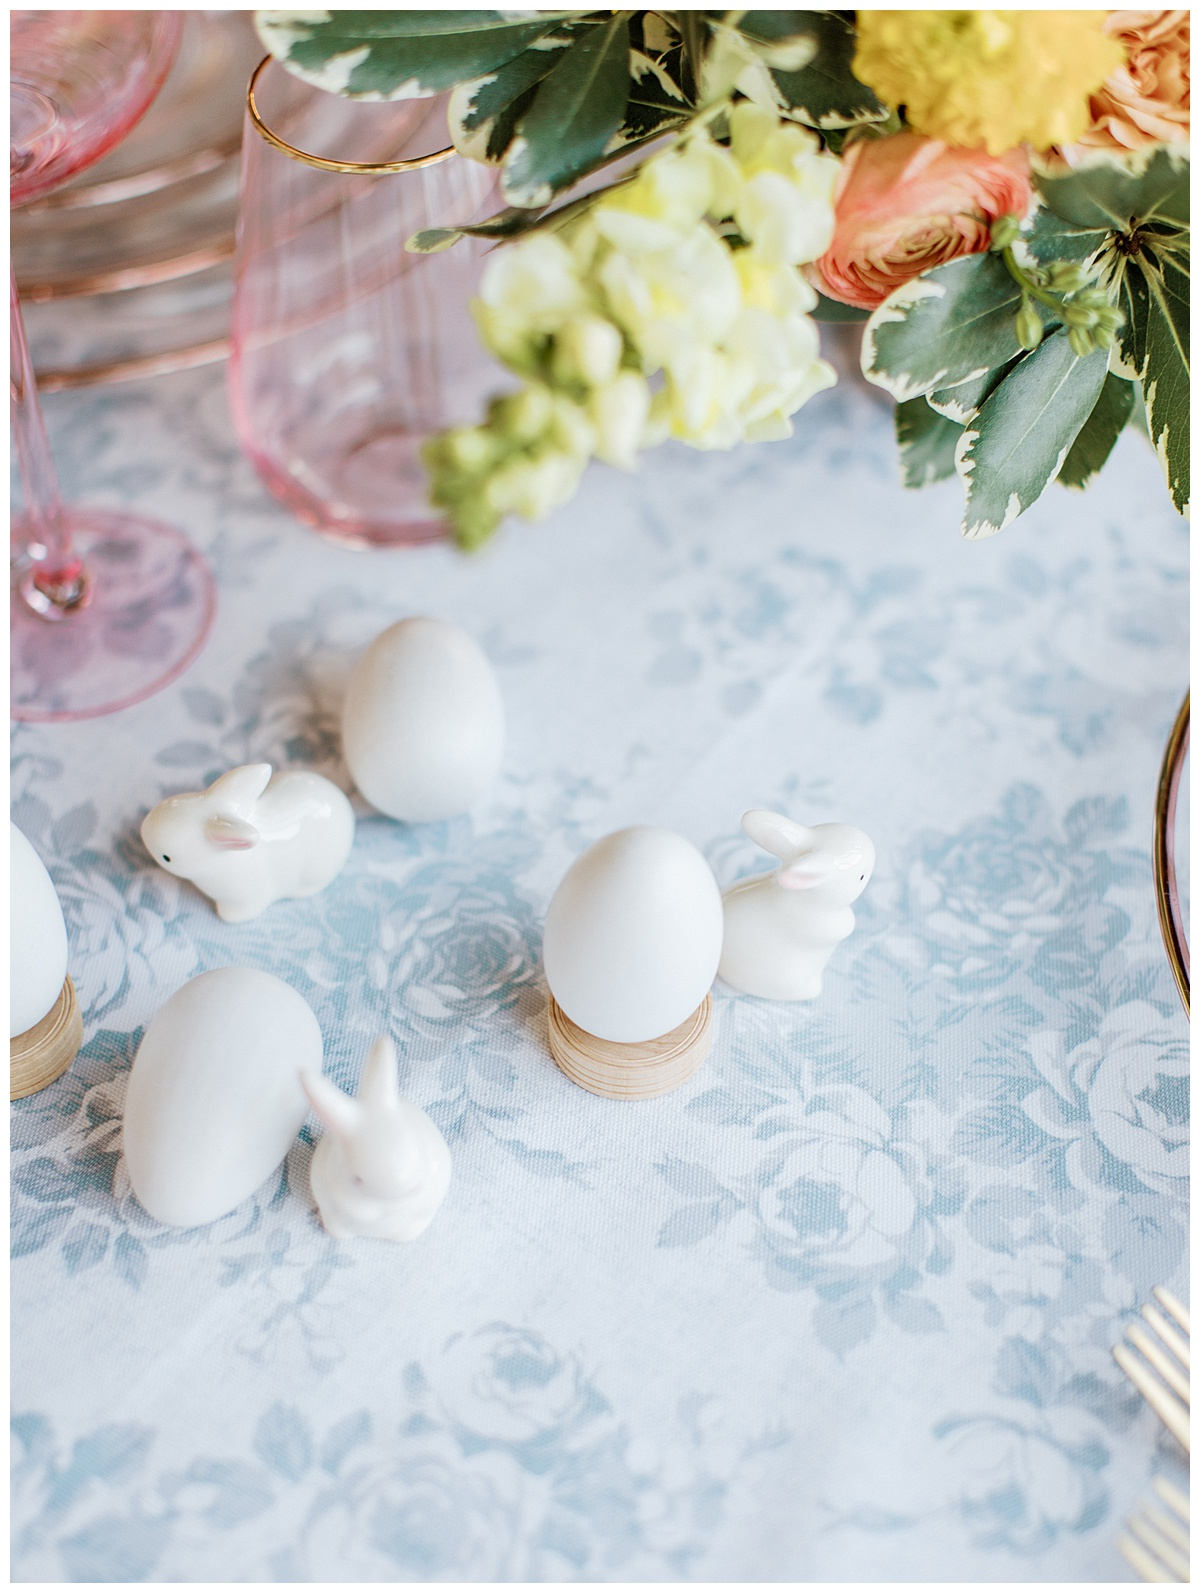 bunnies and eggs on Easter tablescape